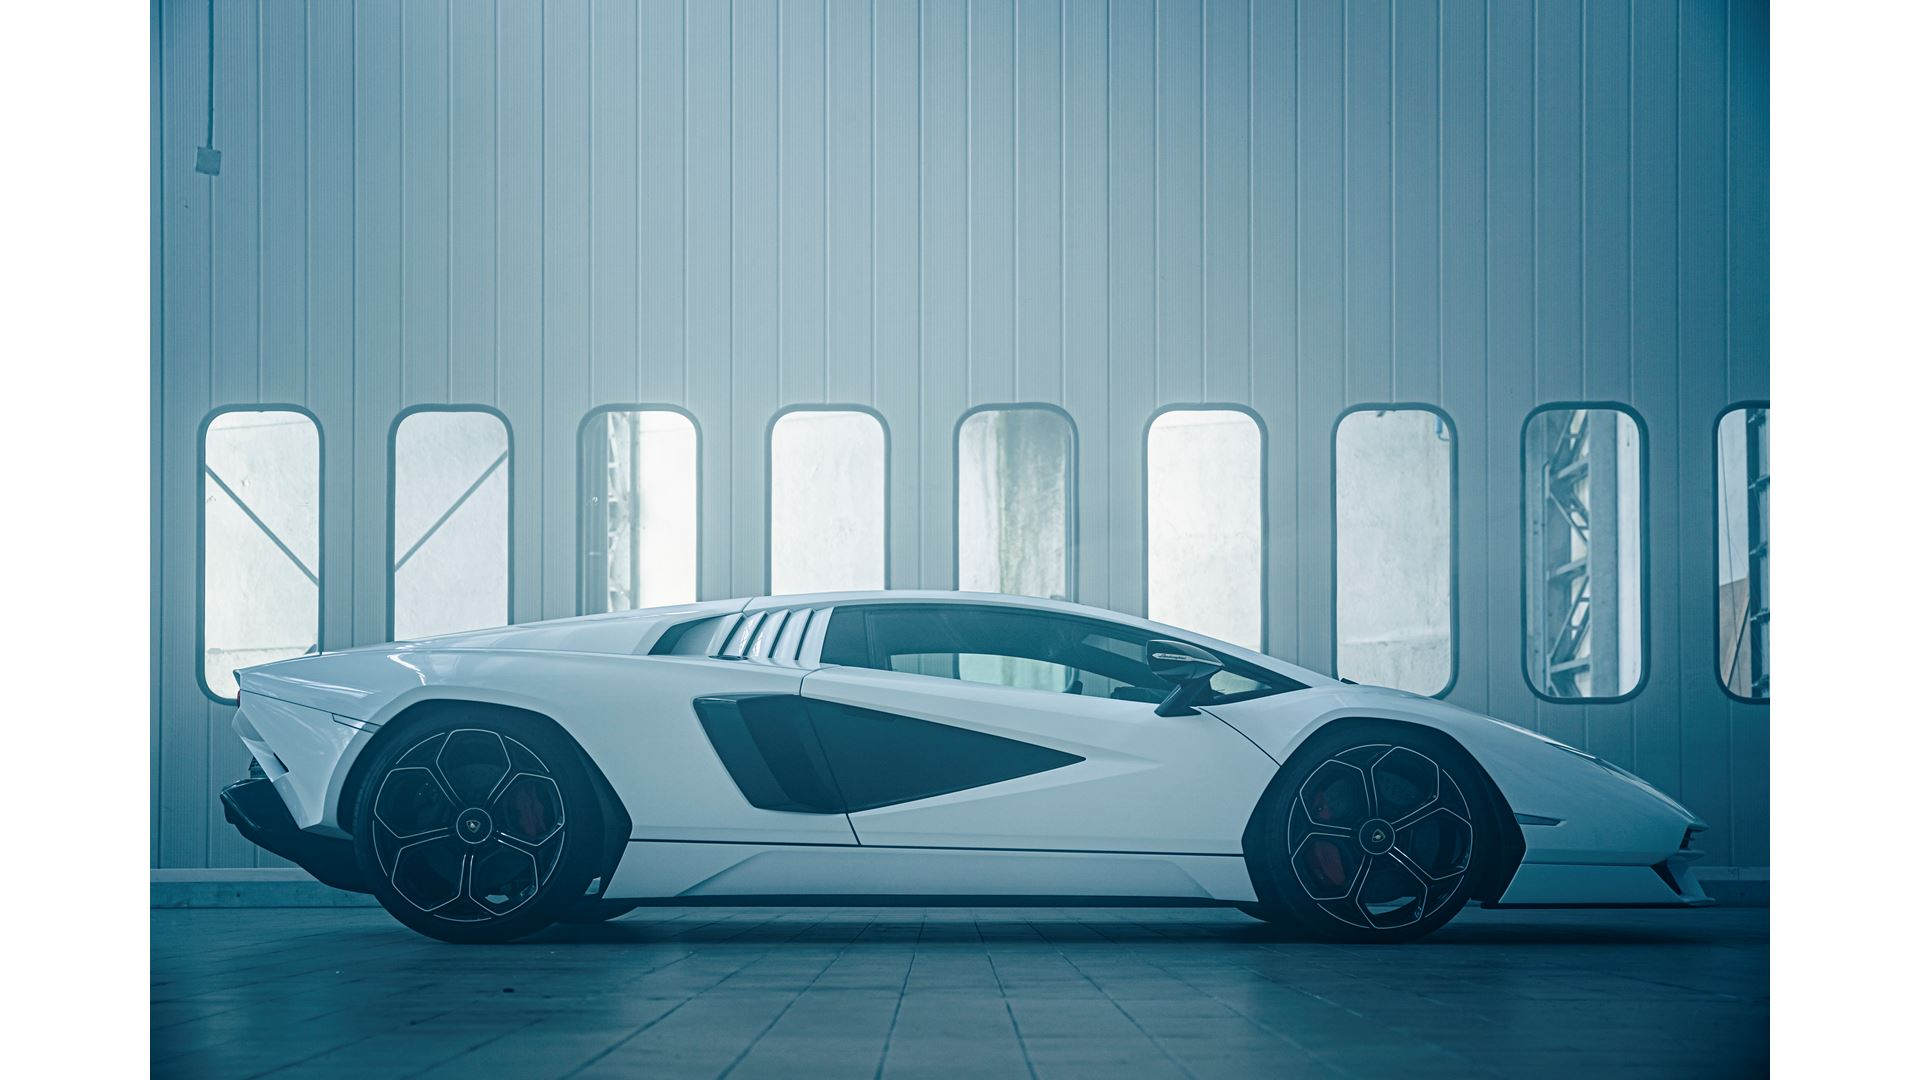 Lamborghini Countach LPI 800-4. A design and technology benchmark for modern super sports cars, reimagined for a new era: Our legacy to the future - Image 2